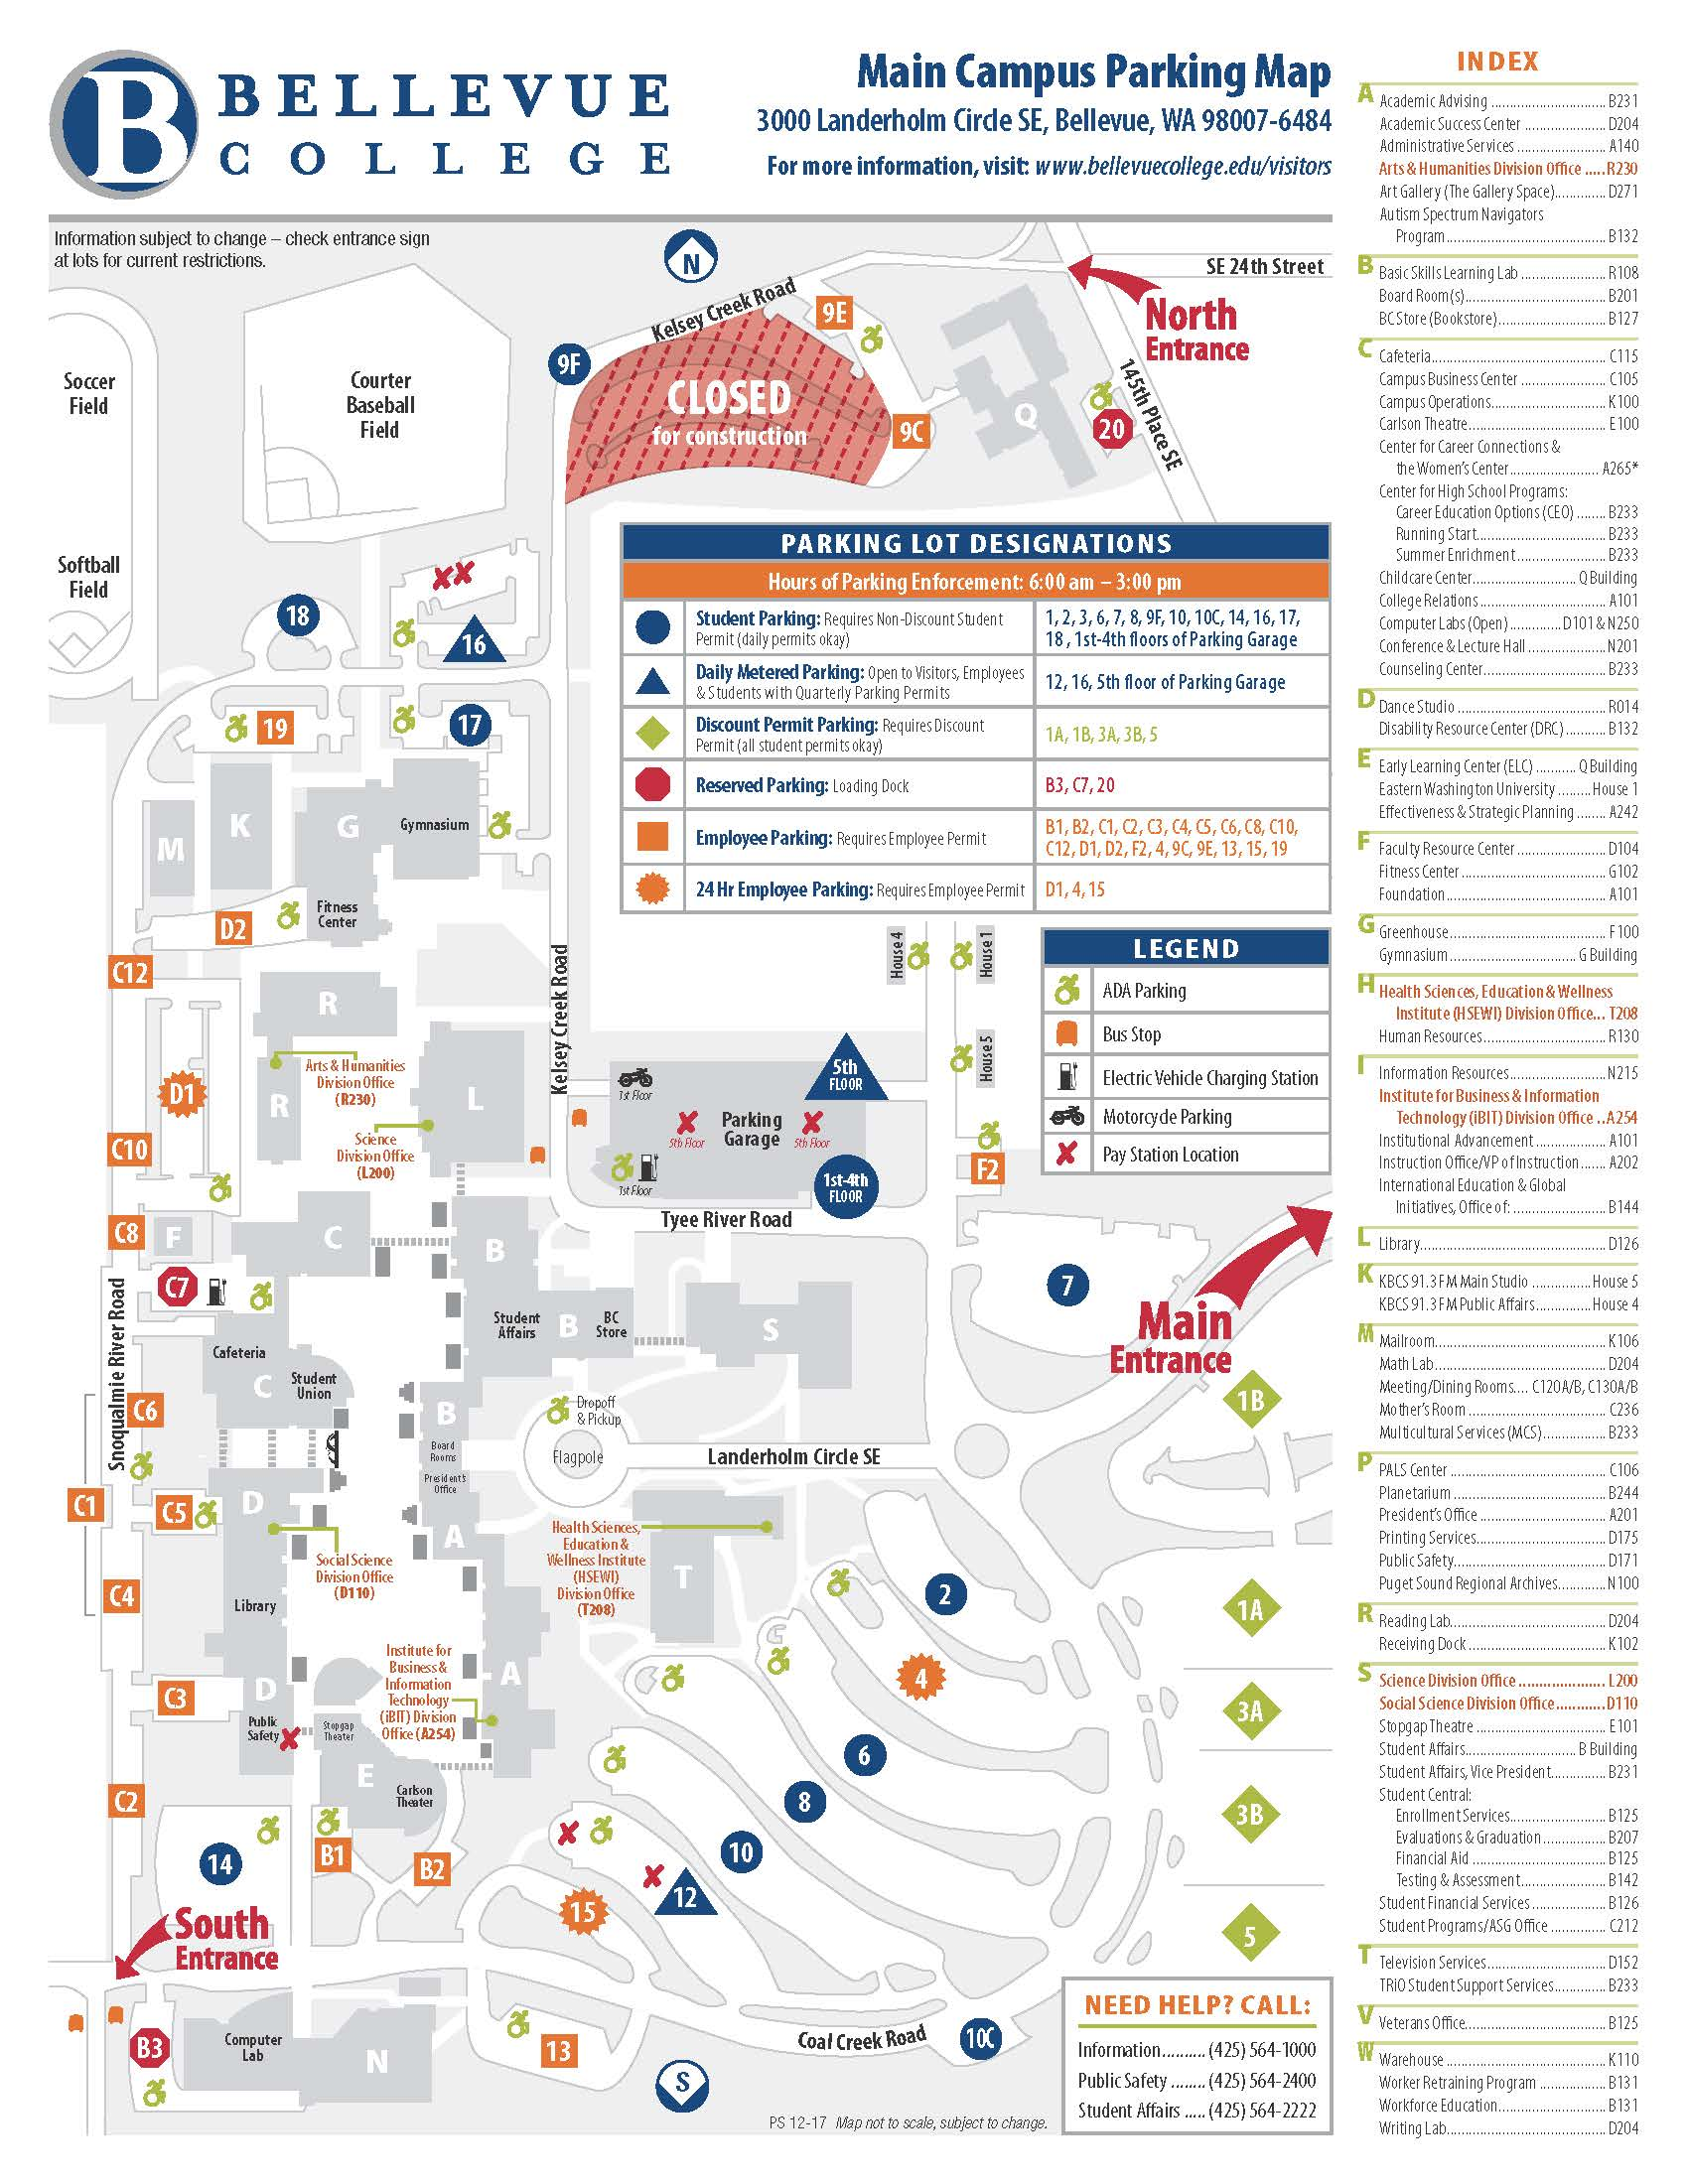 Main Campus Parking Lots Location and Maps